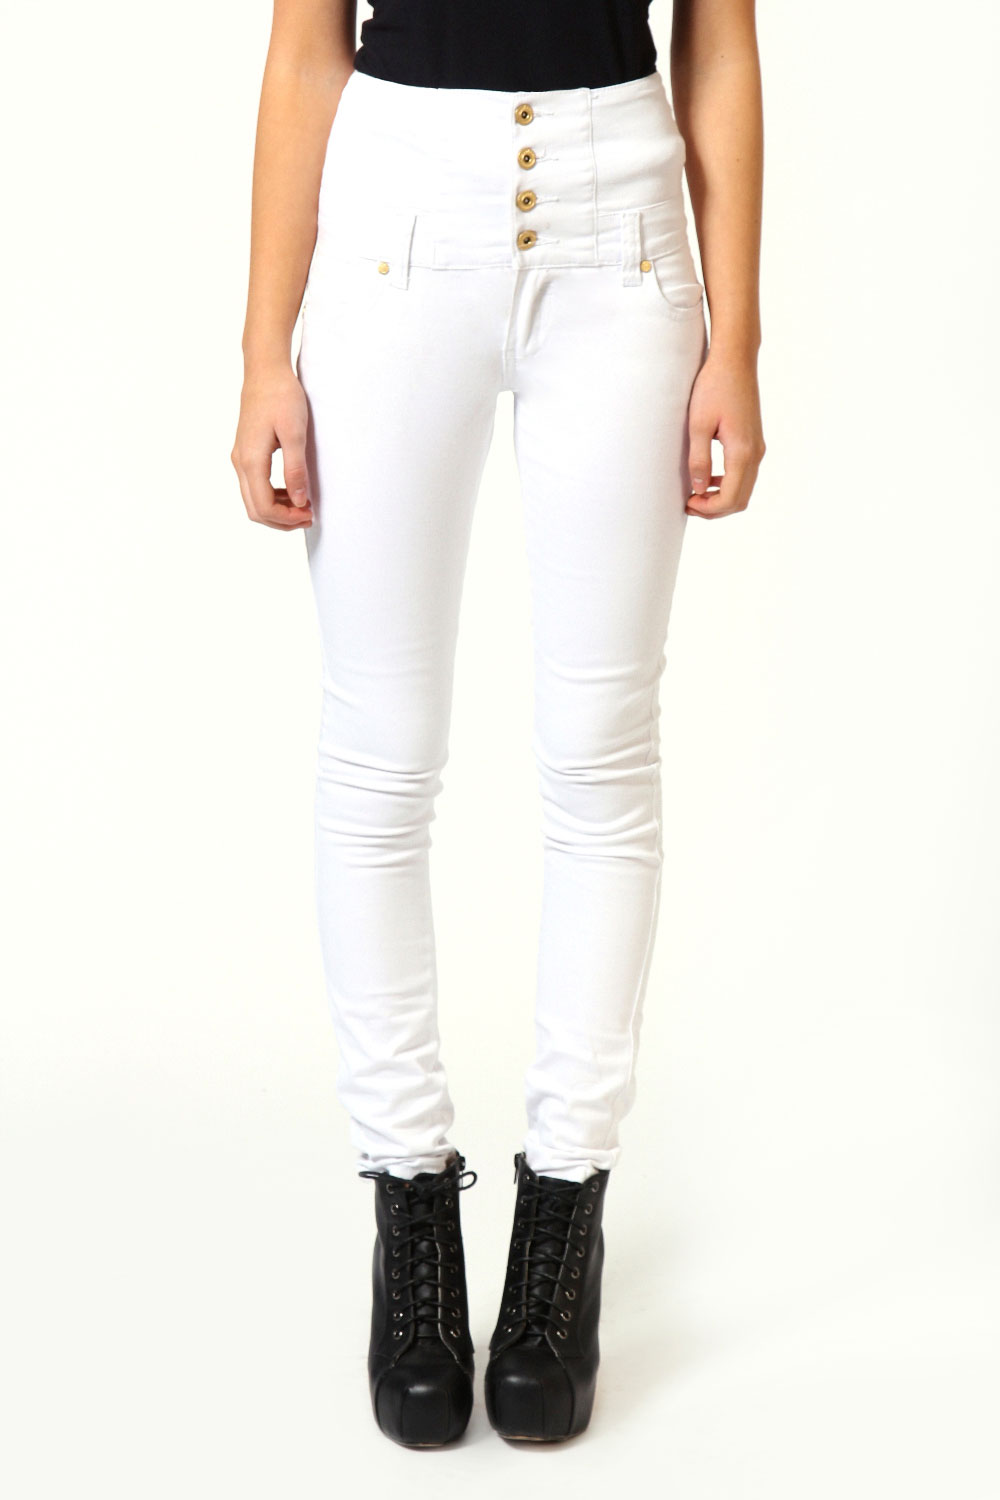 Shop High Waisted apparel at Wrangler Wranglercom is your source for  western wear jeans shirts amp ff785bf1dd8c5